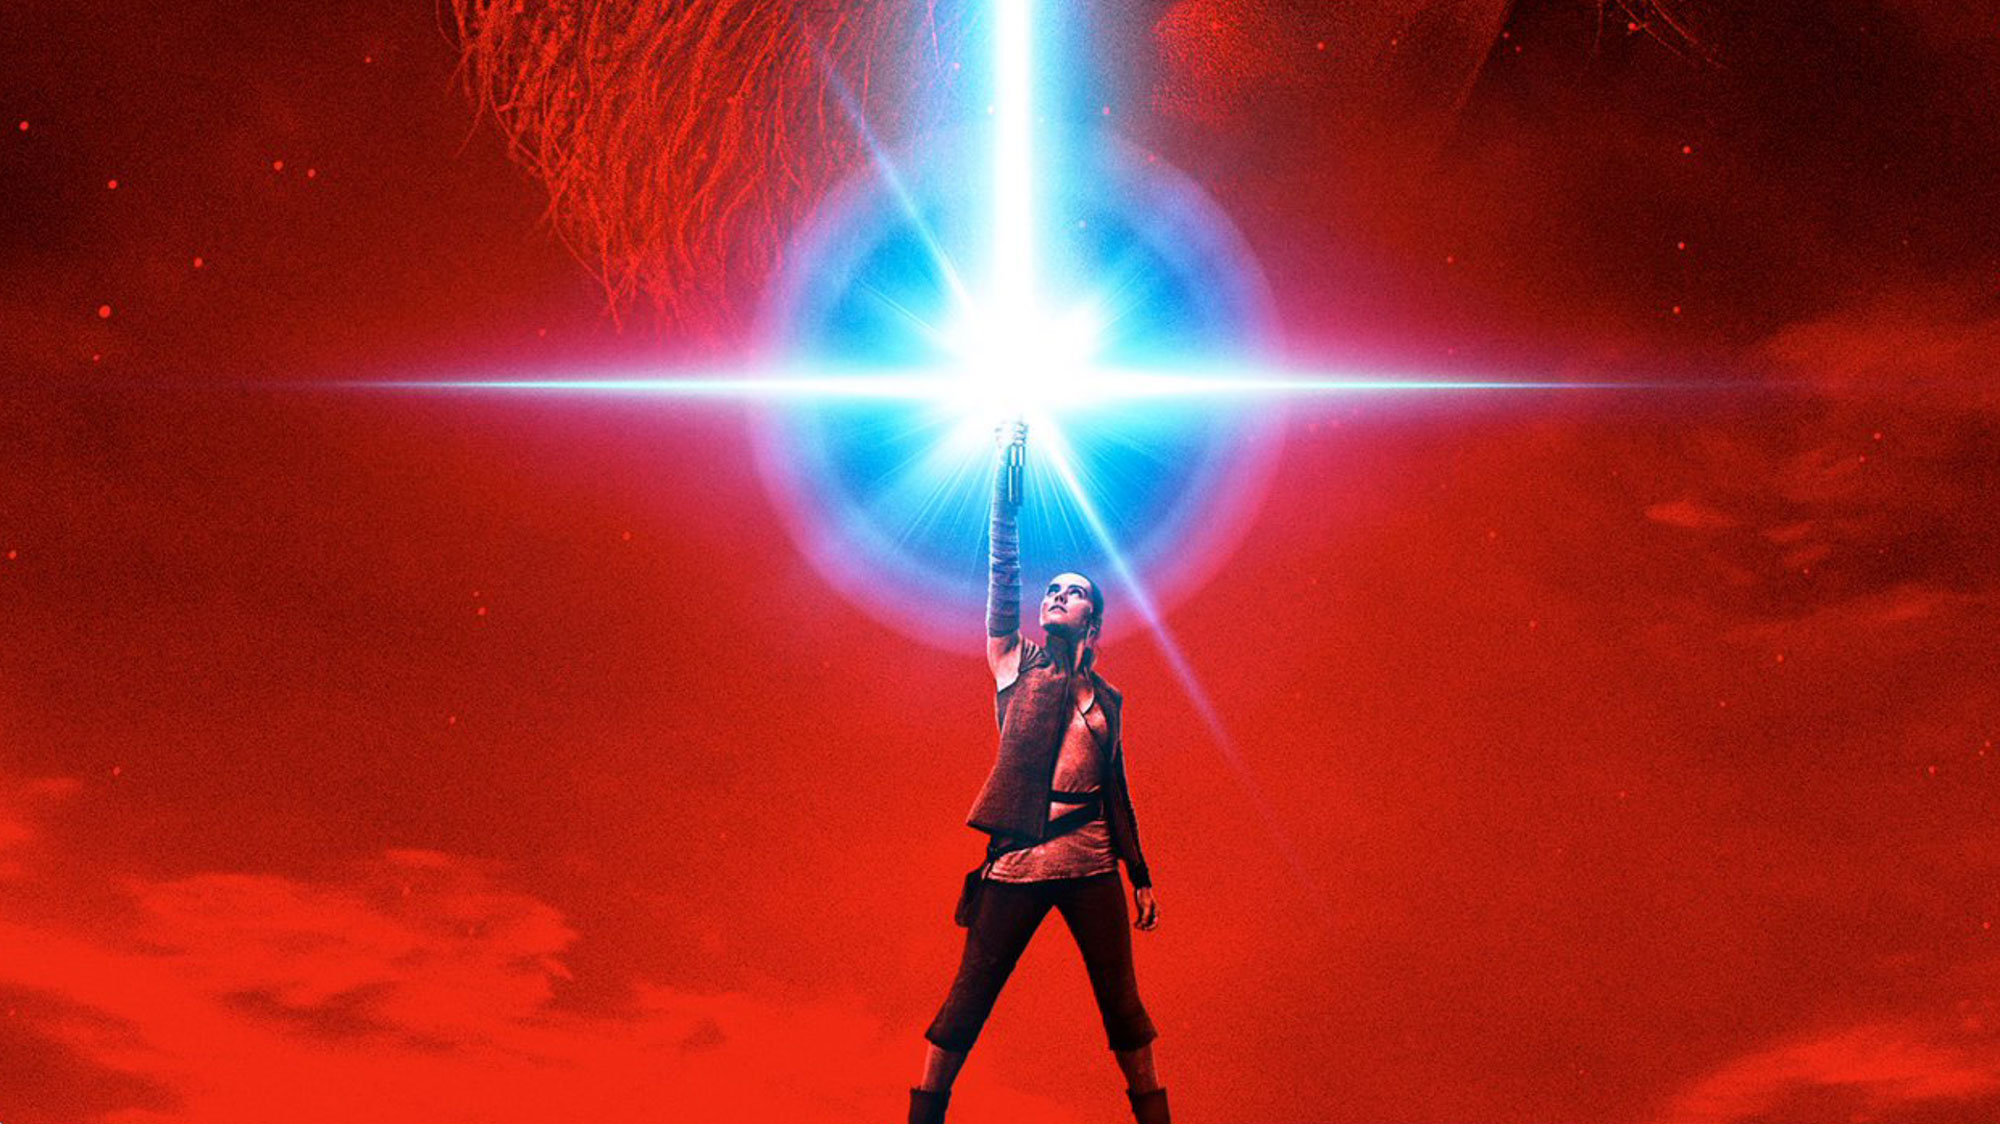 'Star Wars: The Last Jedi' opens huge with $45 million on Thursday